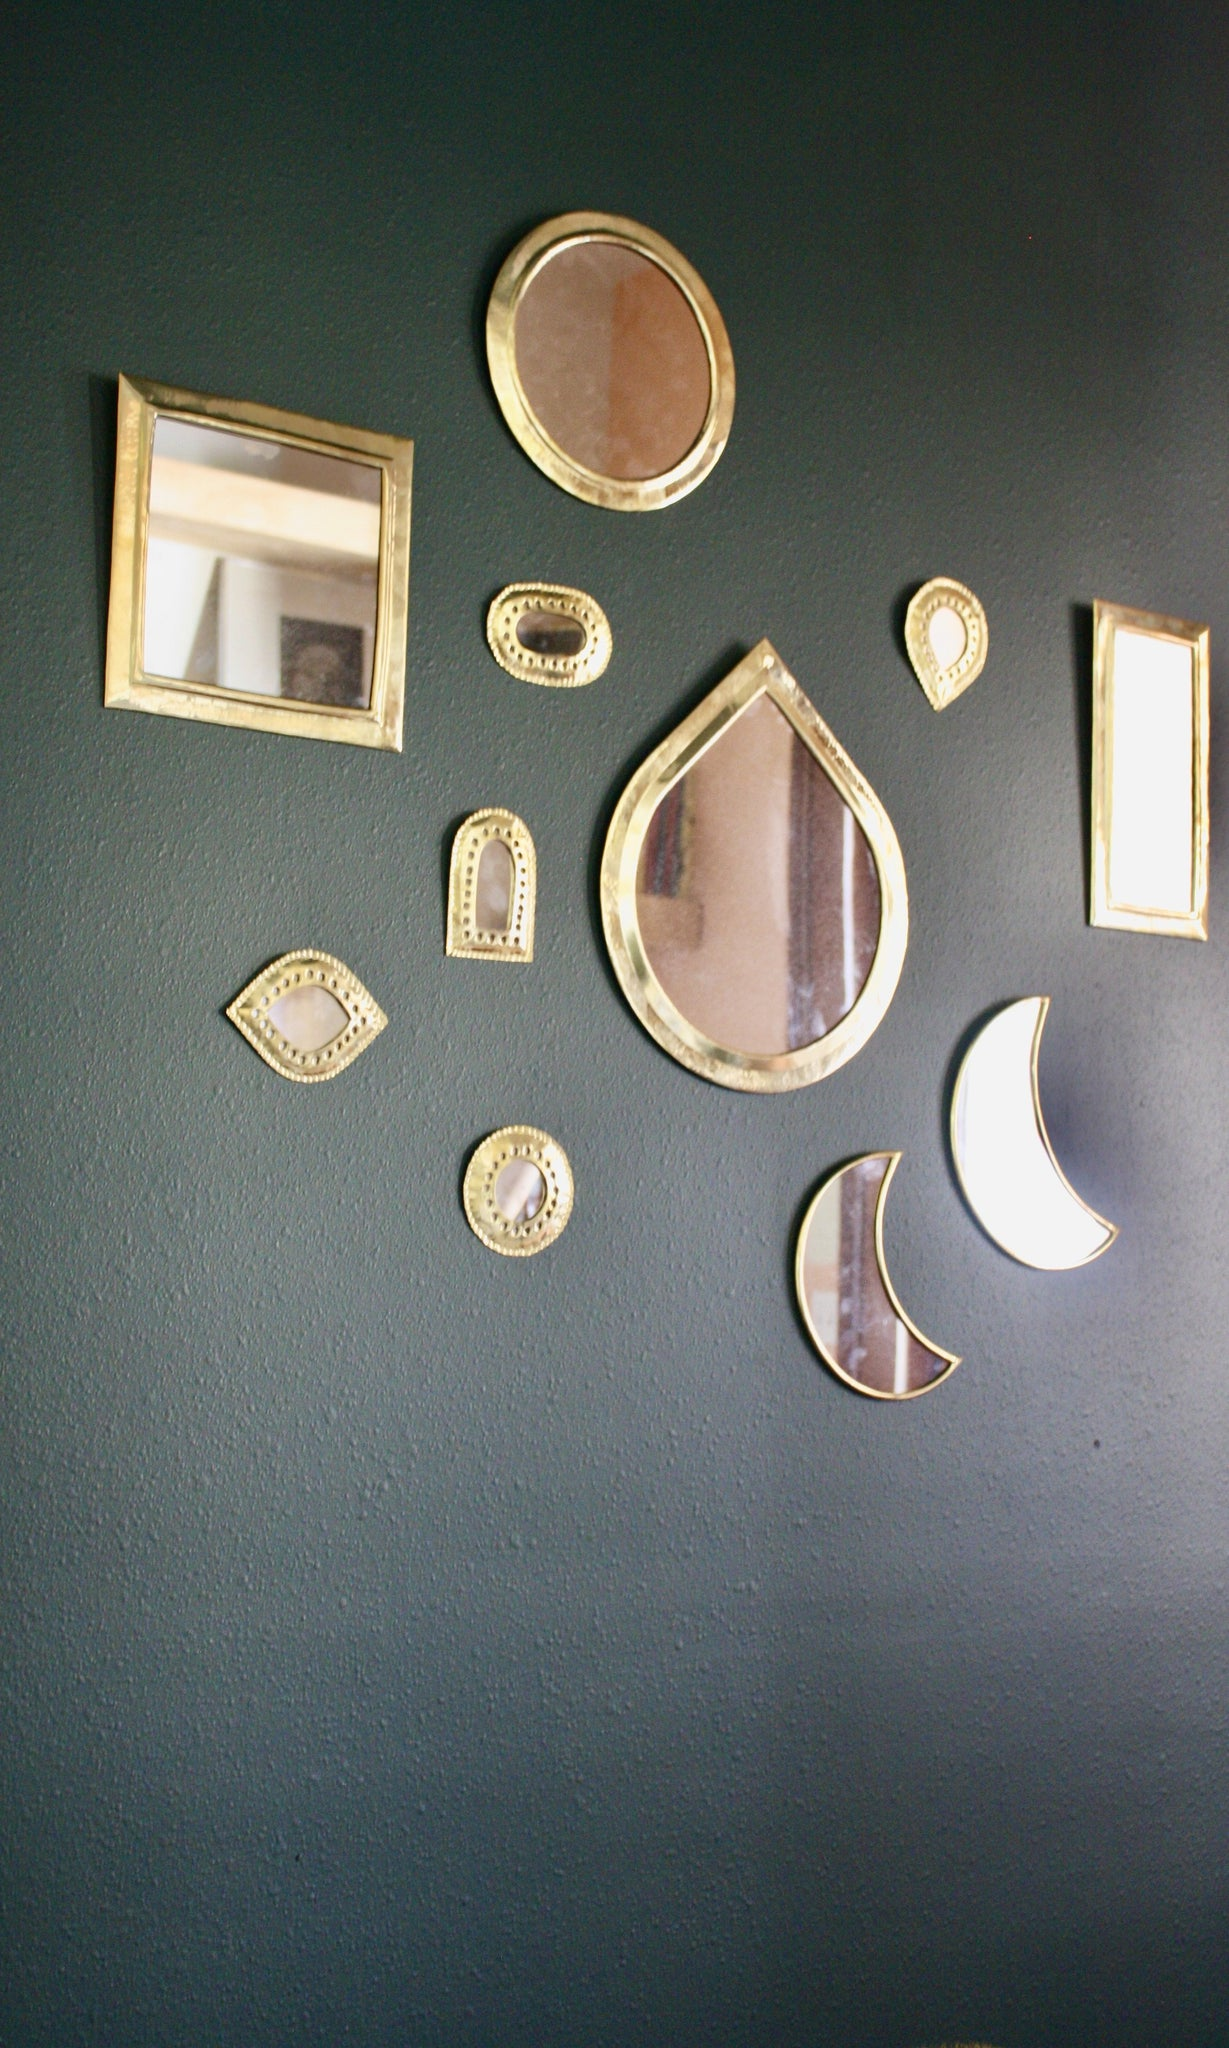 Handmade and handcrafted Brass Round Mirror from Morocco